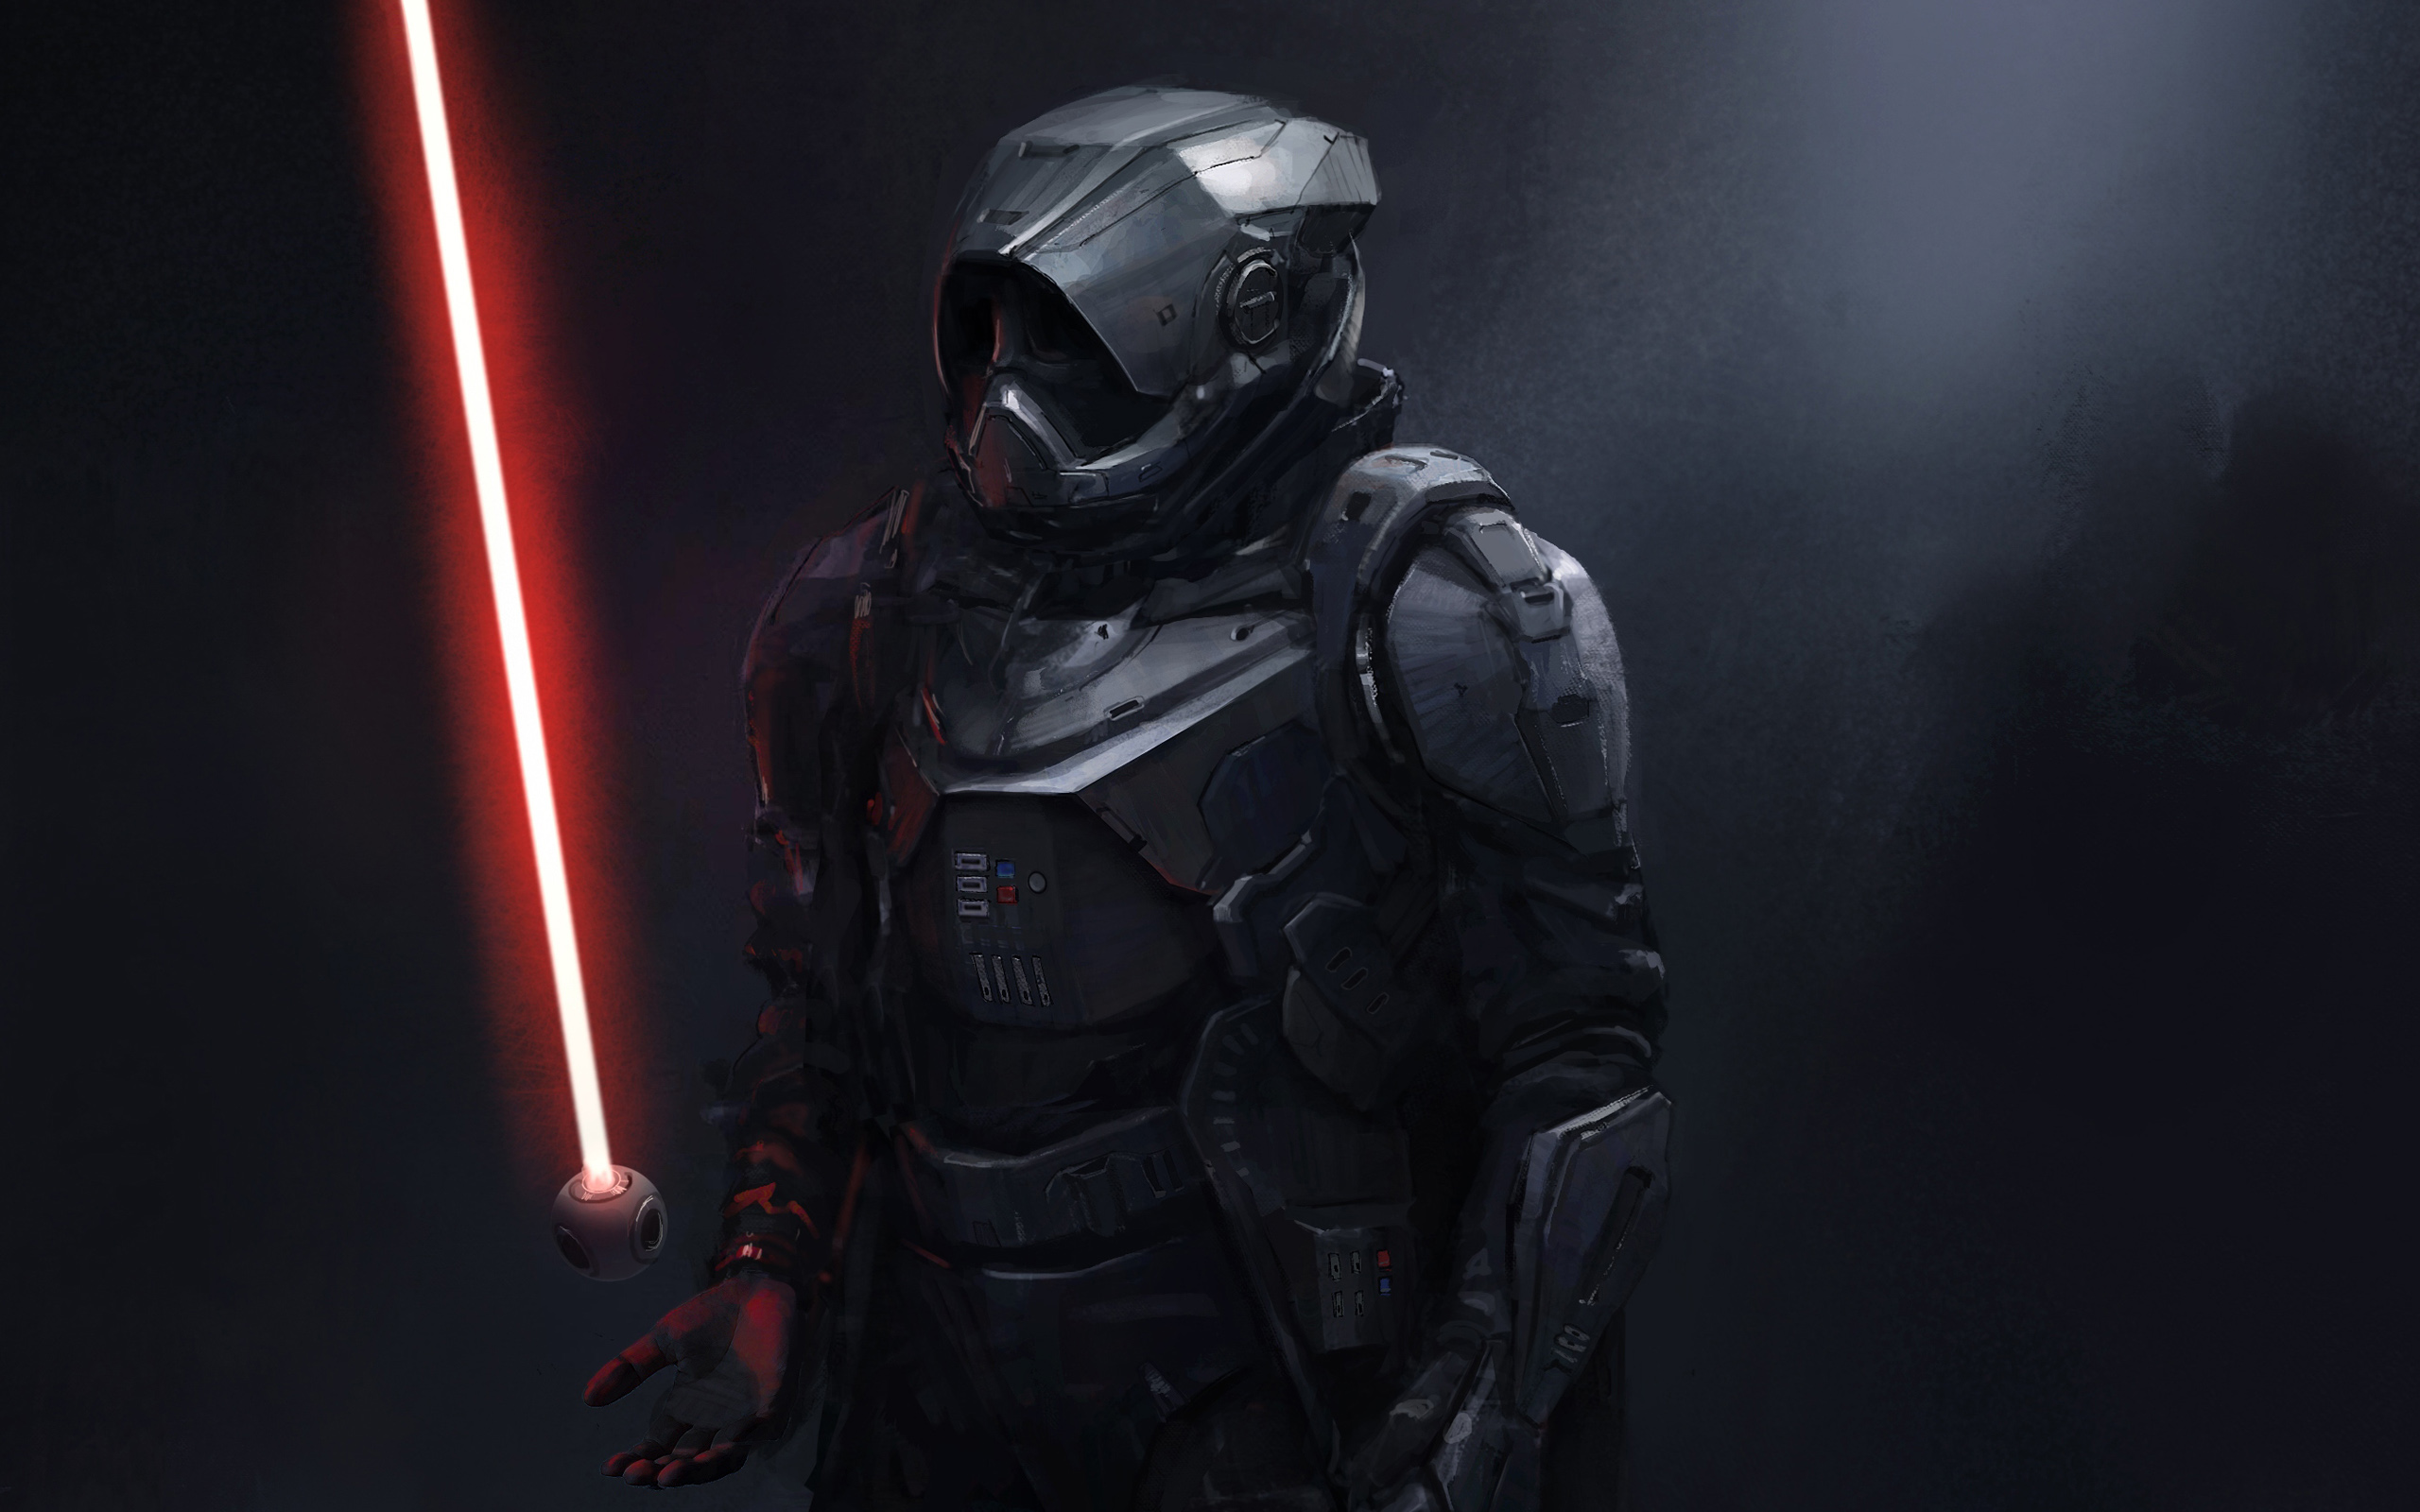 Download 2560x1600 Darth Vader Concept Art Wallpapers